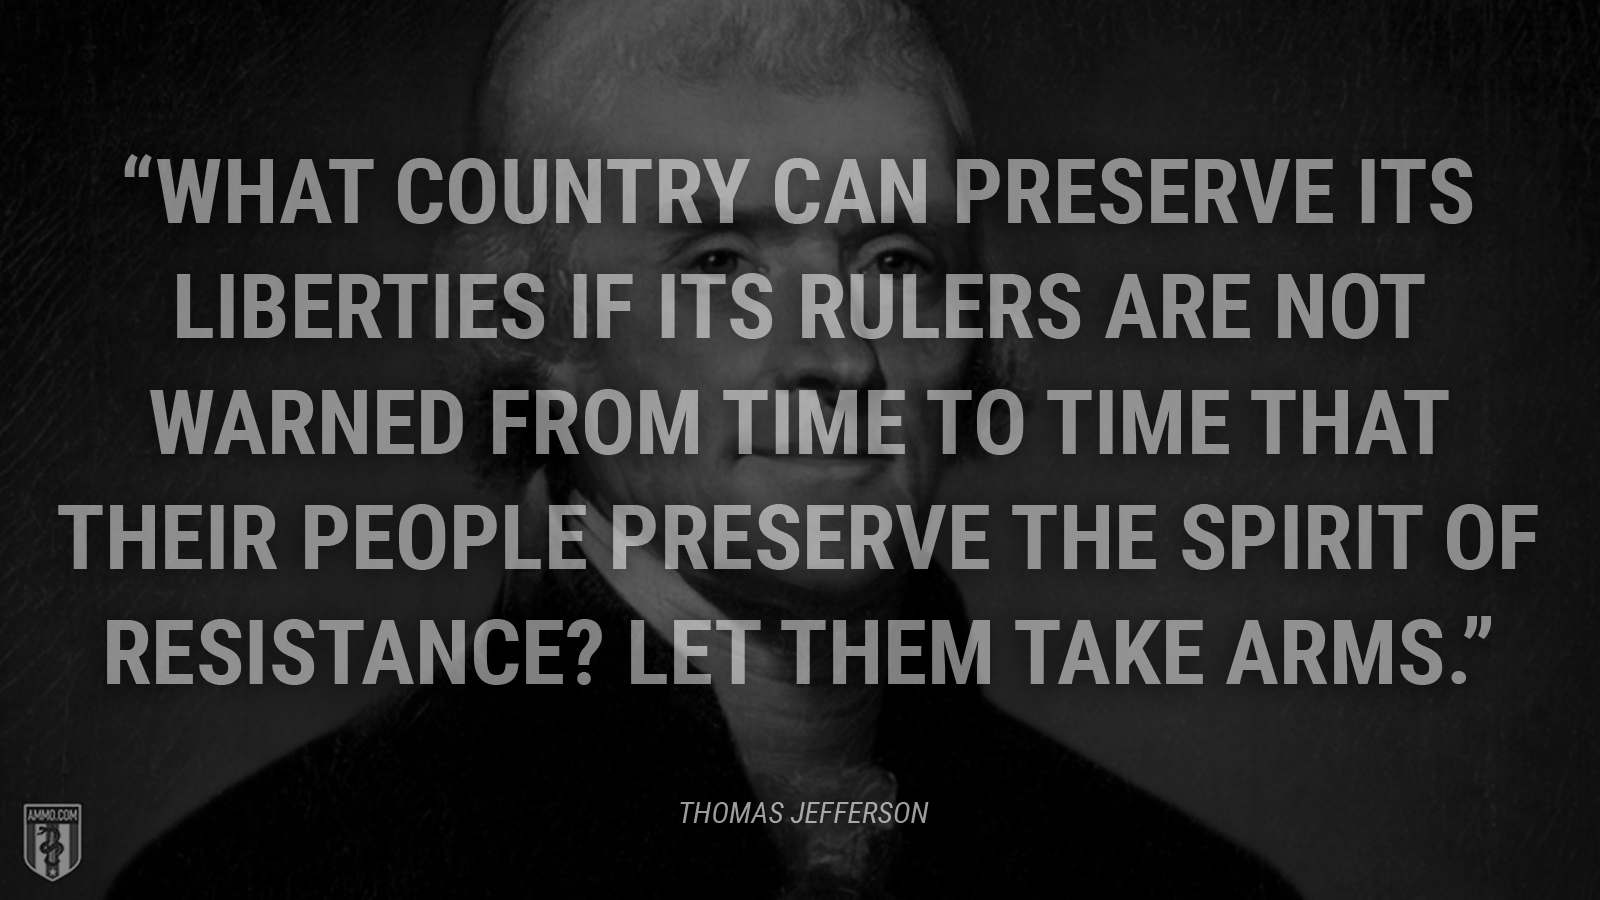 """What country can preserve its liberties if its rulers are not warned from time to time that their people preserve the spirit of resistance? Let them take arms."" - Thomas Jefferson"